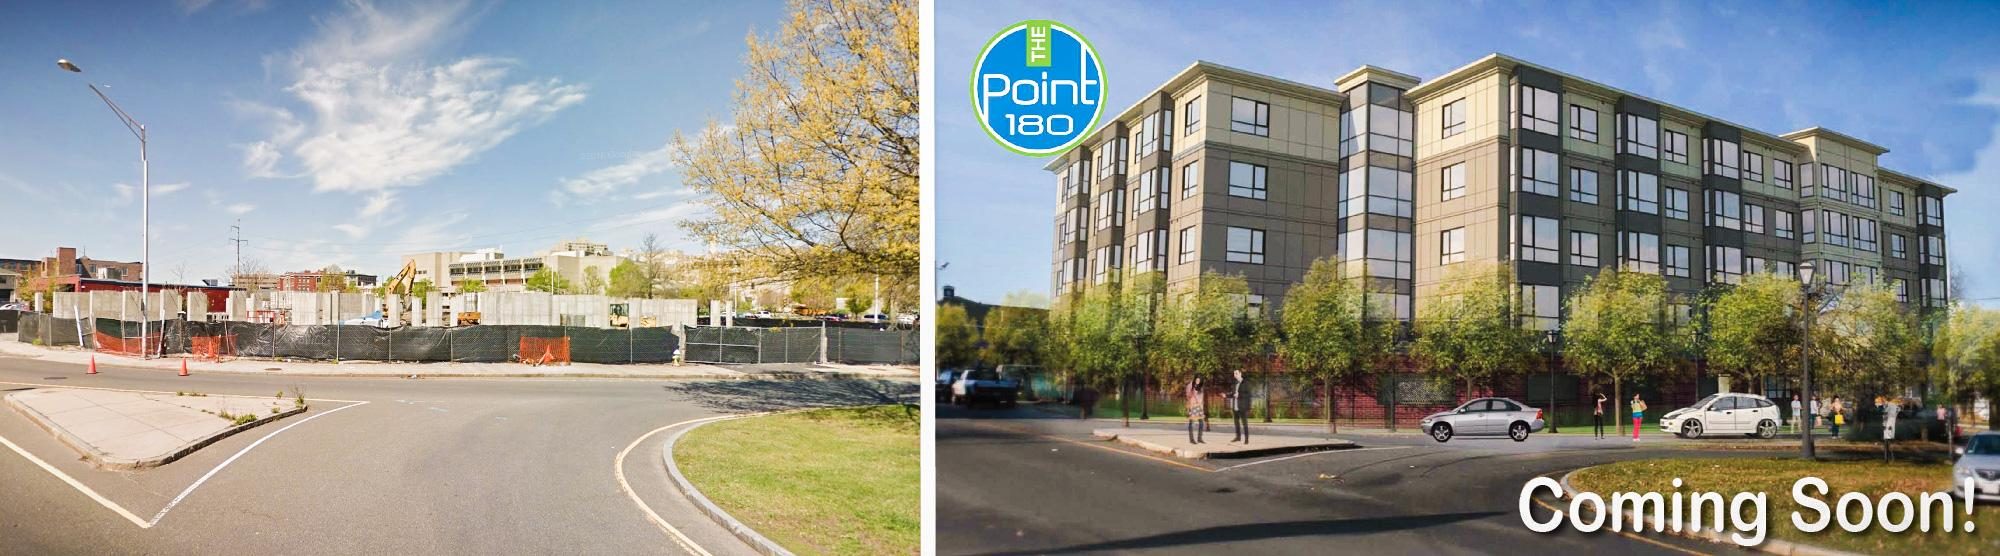 The Point at 180 on Eastern Avenue